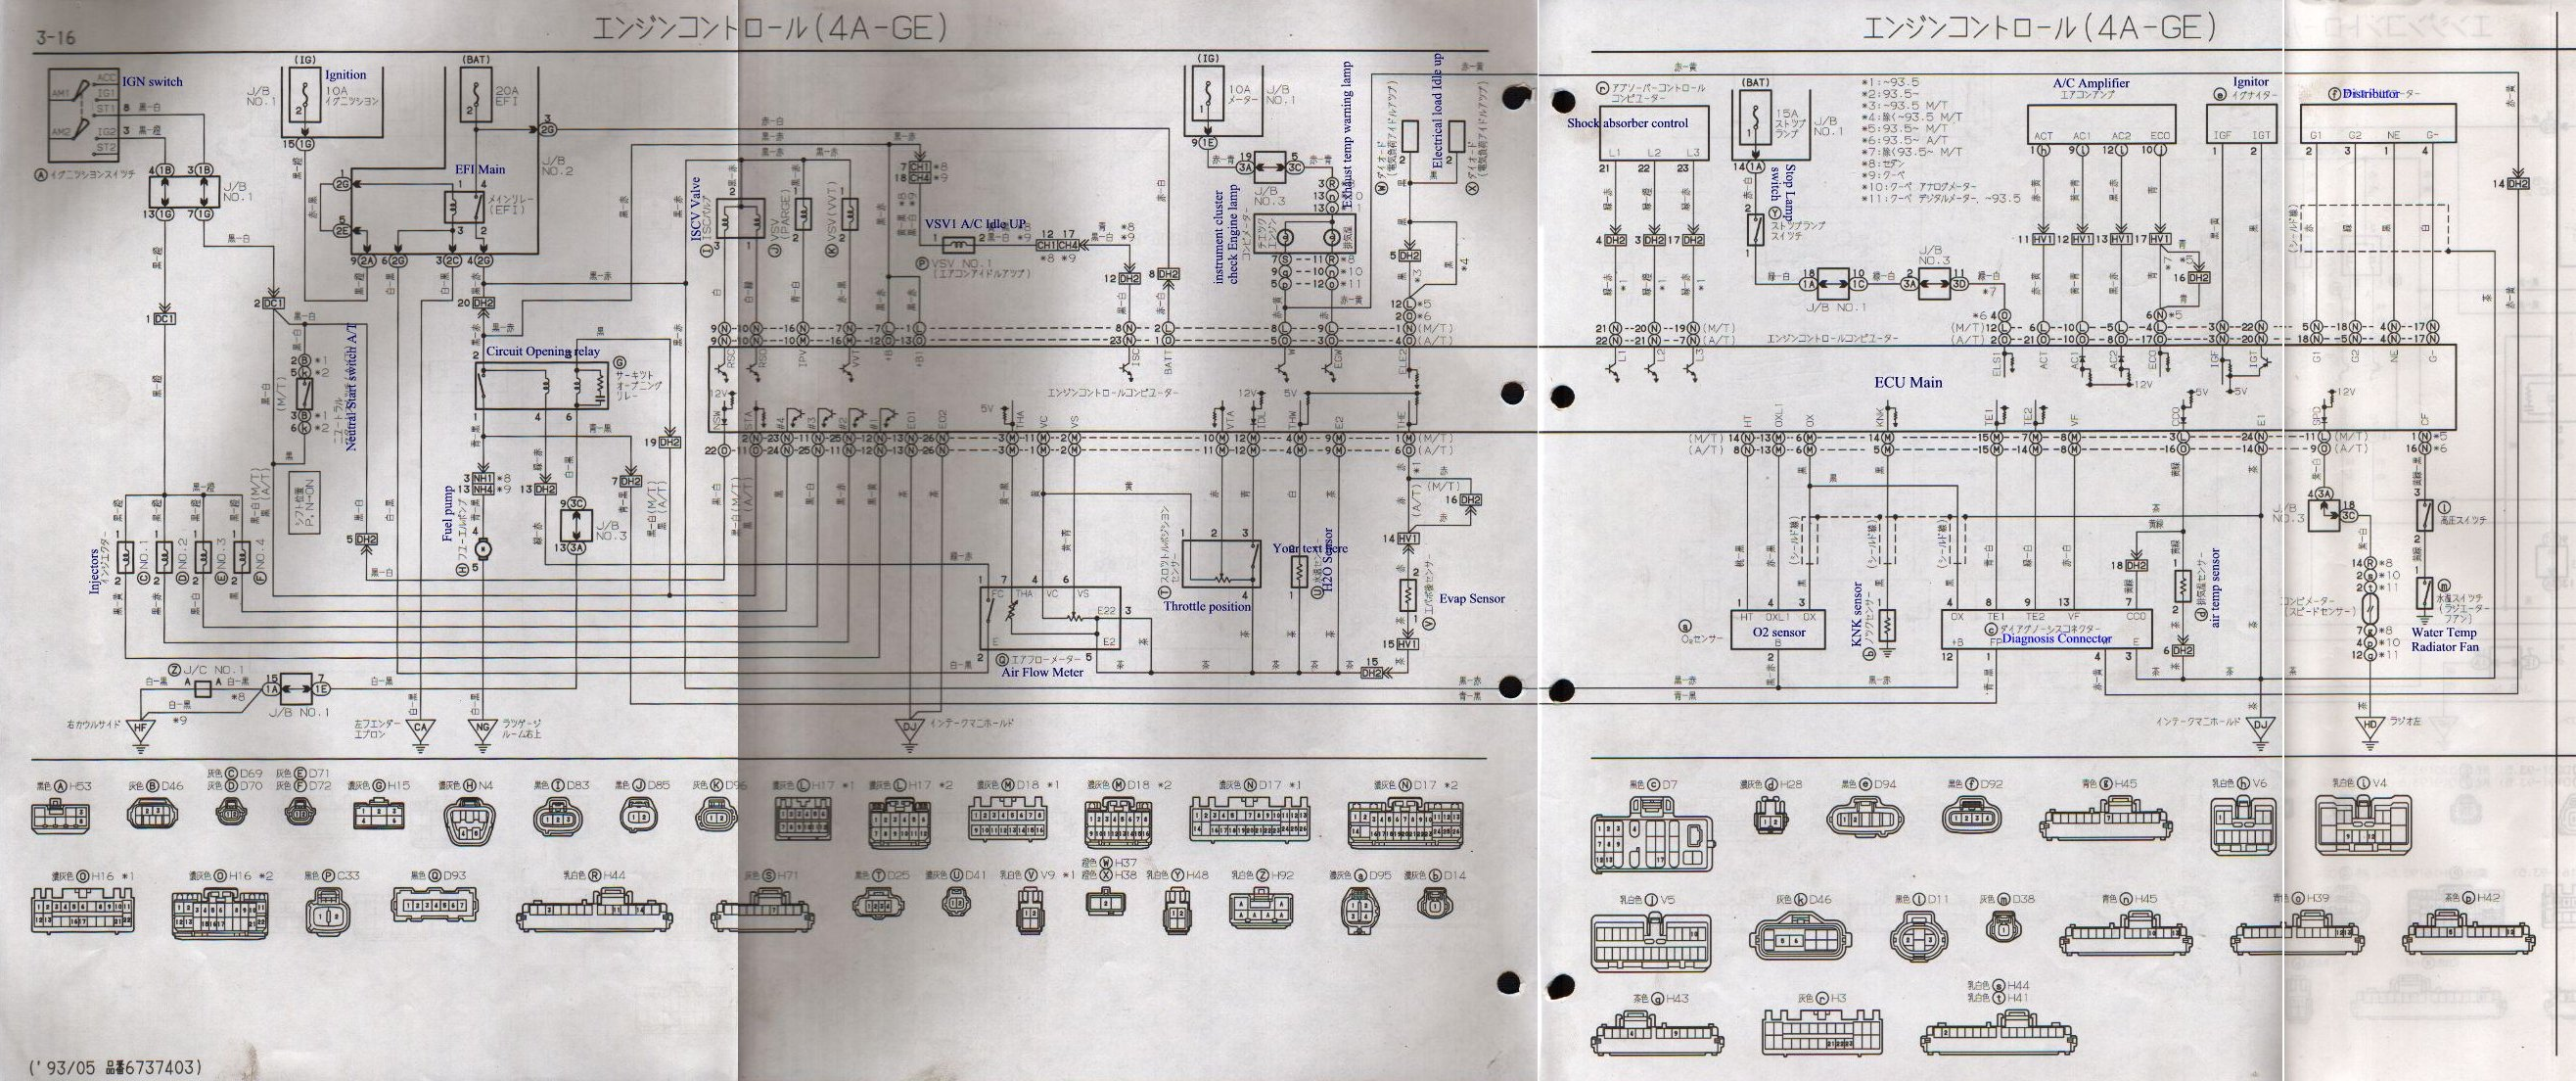 Tundra Mirror Wire Diagram likewise England Map Outline moreover Stamford Mx341 Avr Wiring Diagram further 2001 Toyota Camry Fuse Box further Wiring Diagram For 2000 Ford Mustang. on free toyota wiring diagram